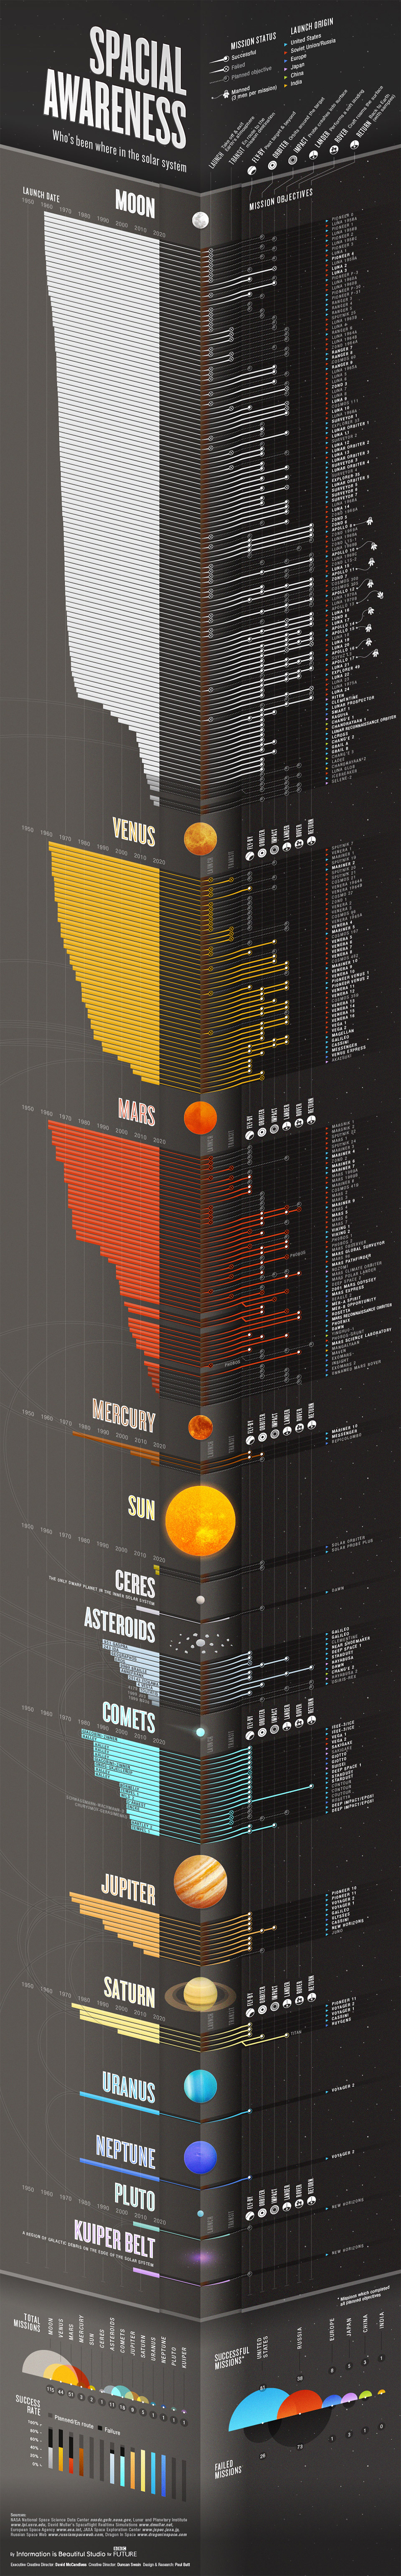 Infographic: Where We've Been in the Solar System